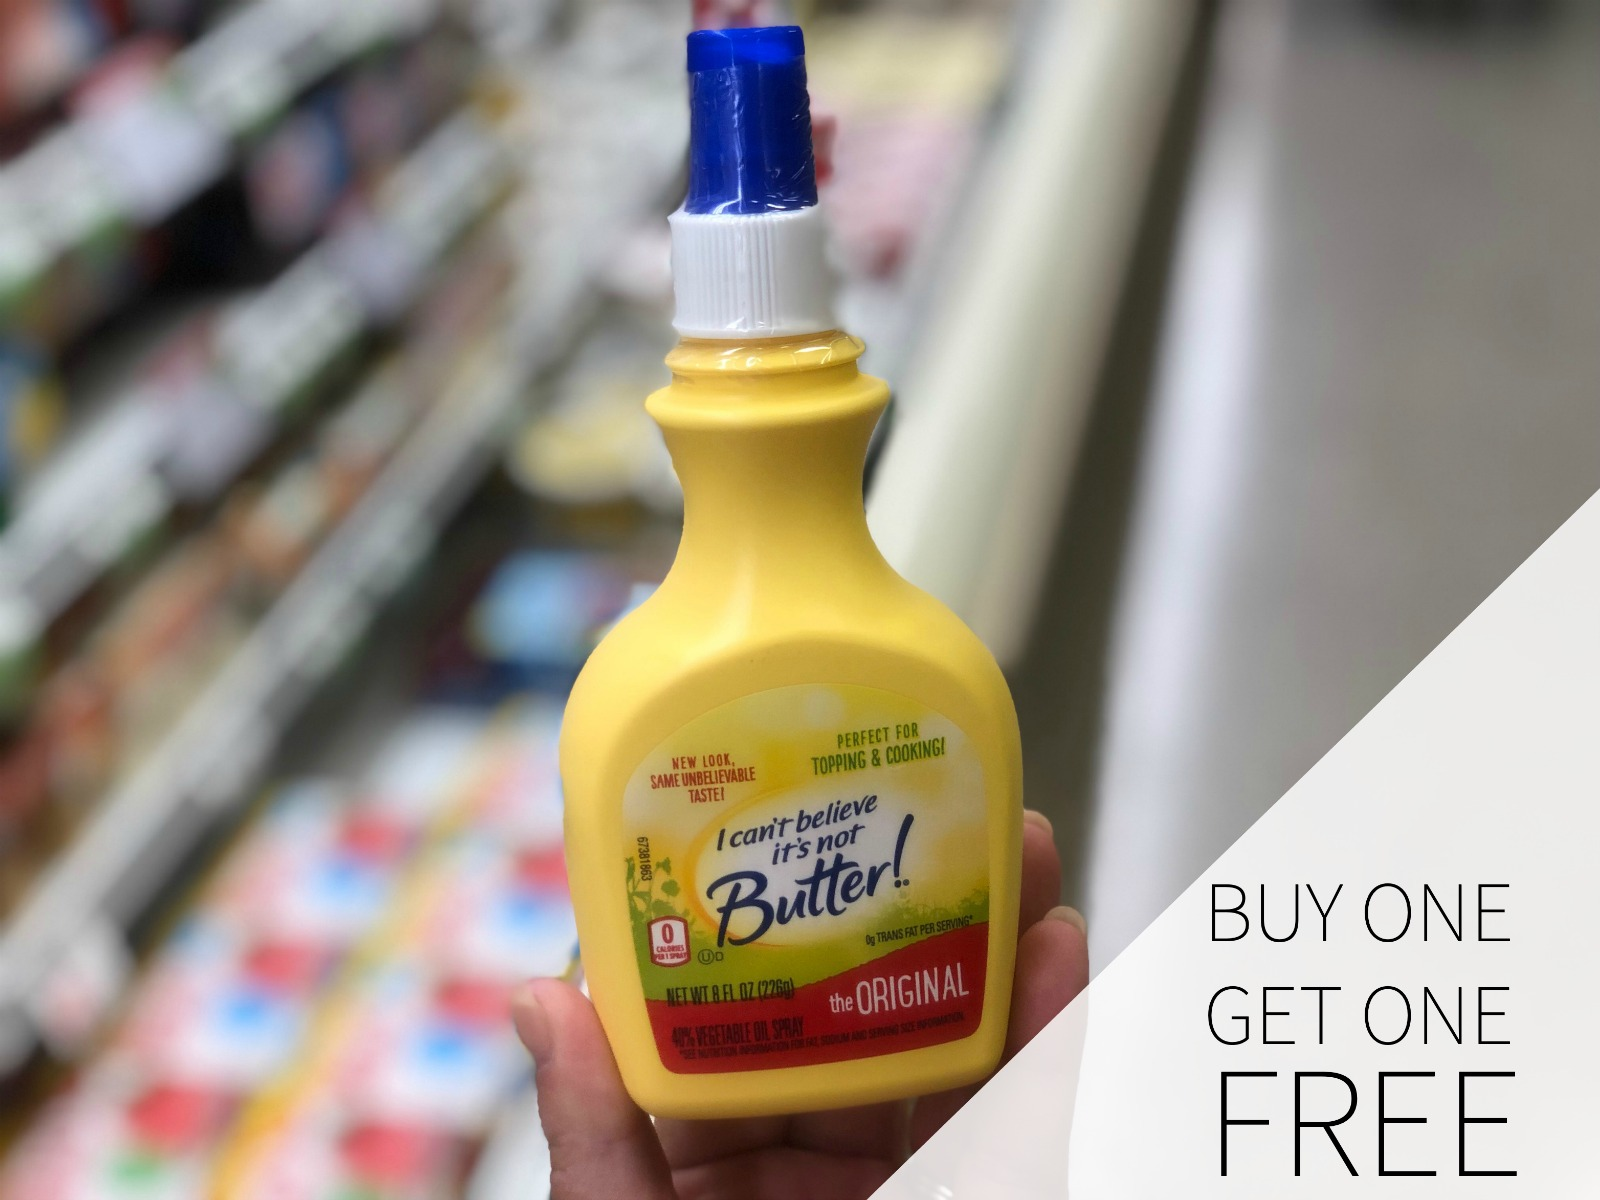 I Can't Believe It's Not Butter! Products Are Buy One, Get One FREE At Publix on I Heart Publix